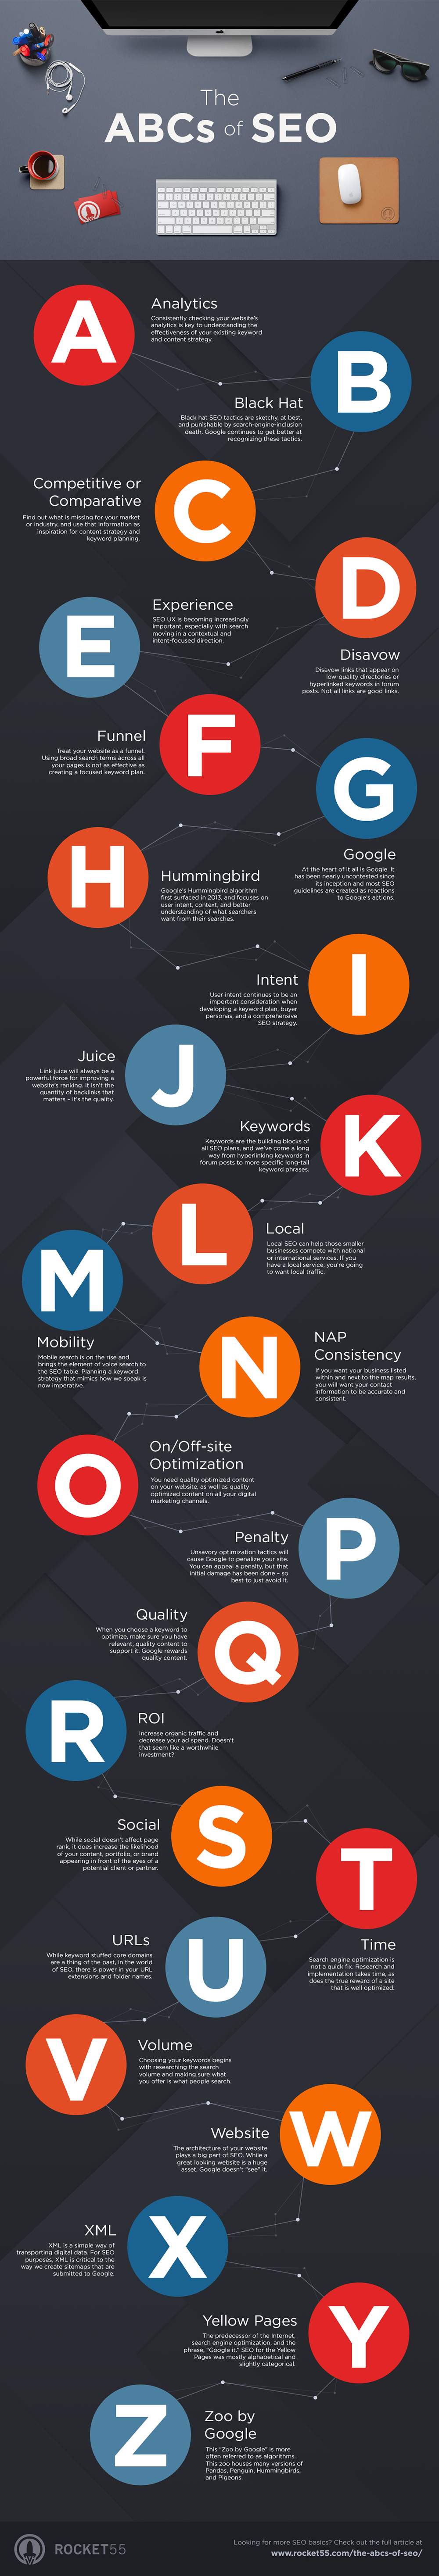 The A-Z Guide of Search Engine Optimization - Infographic